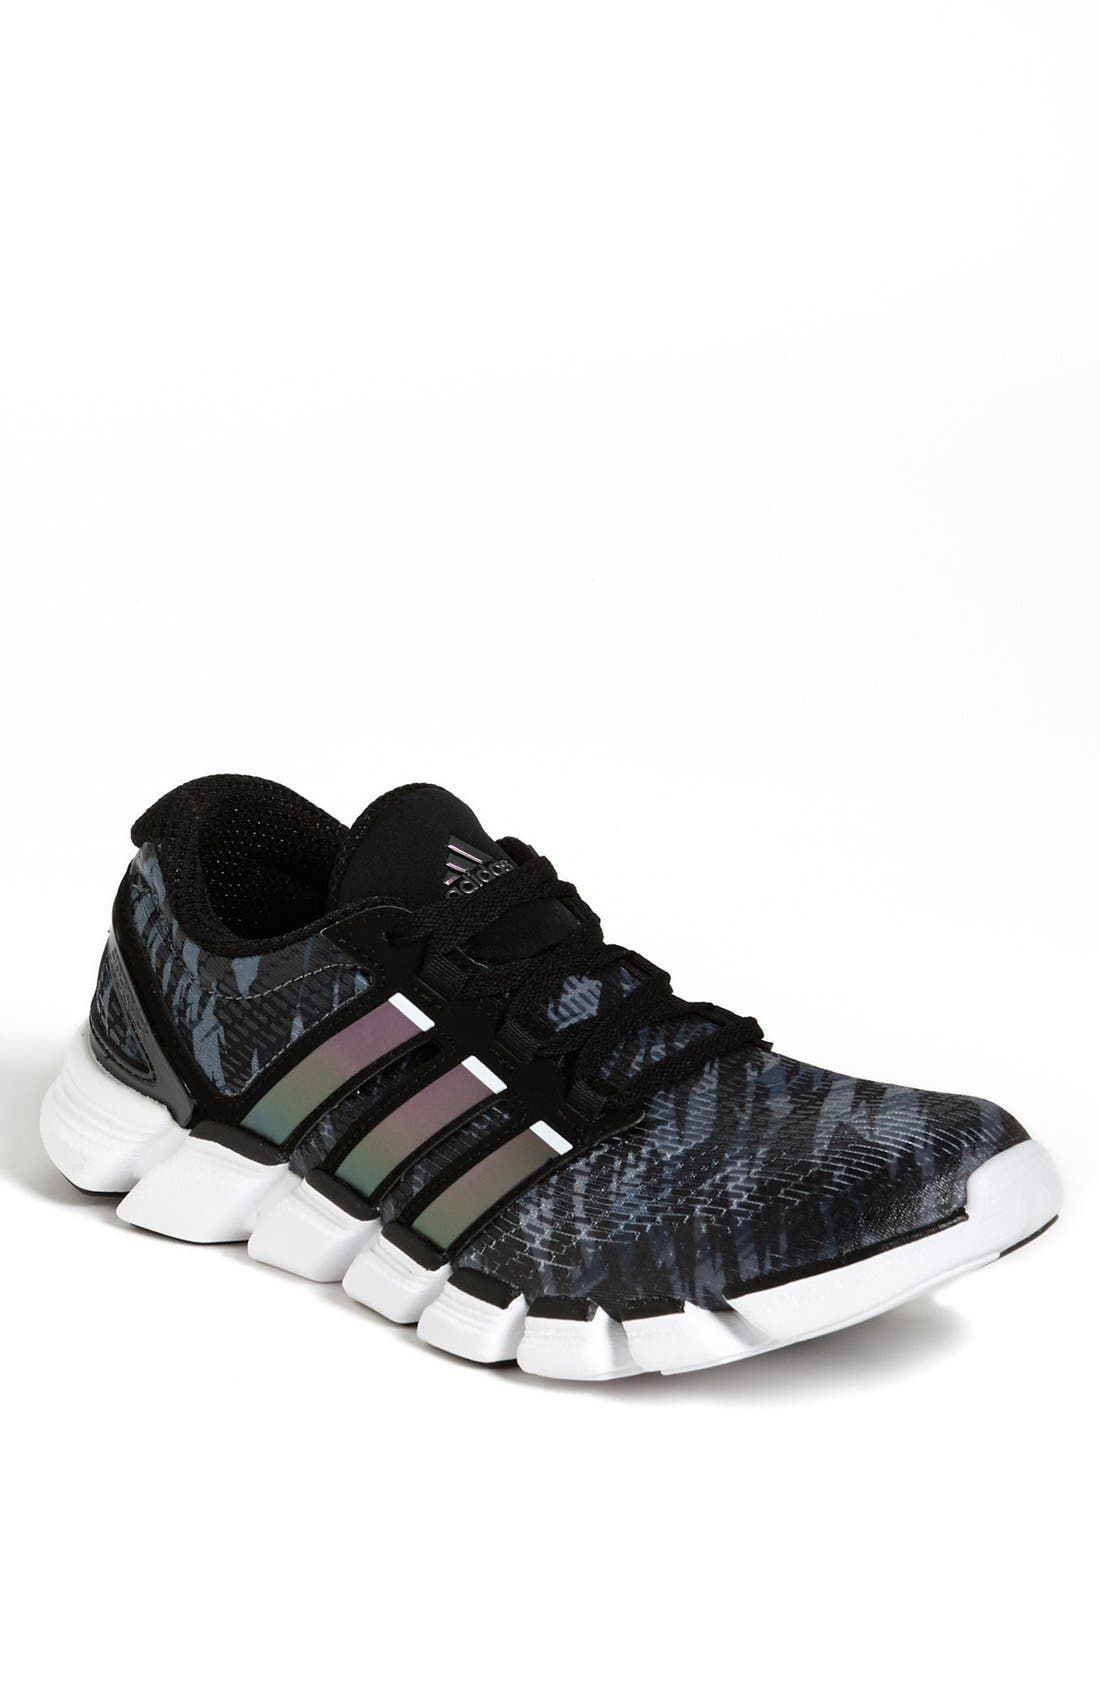 Alternate Image 1 Selected - adidas 'adiPure CrazyQuick' Running Shoe (Men)